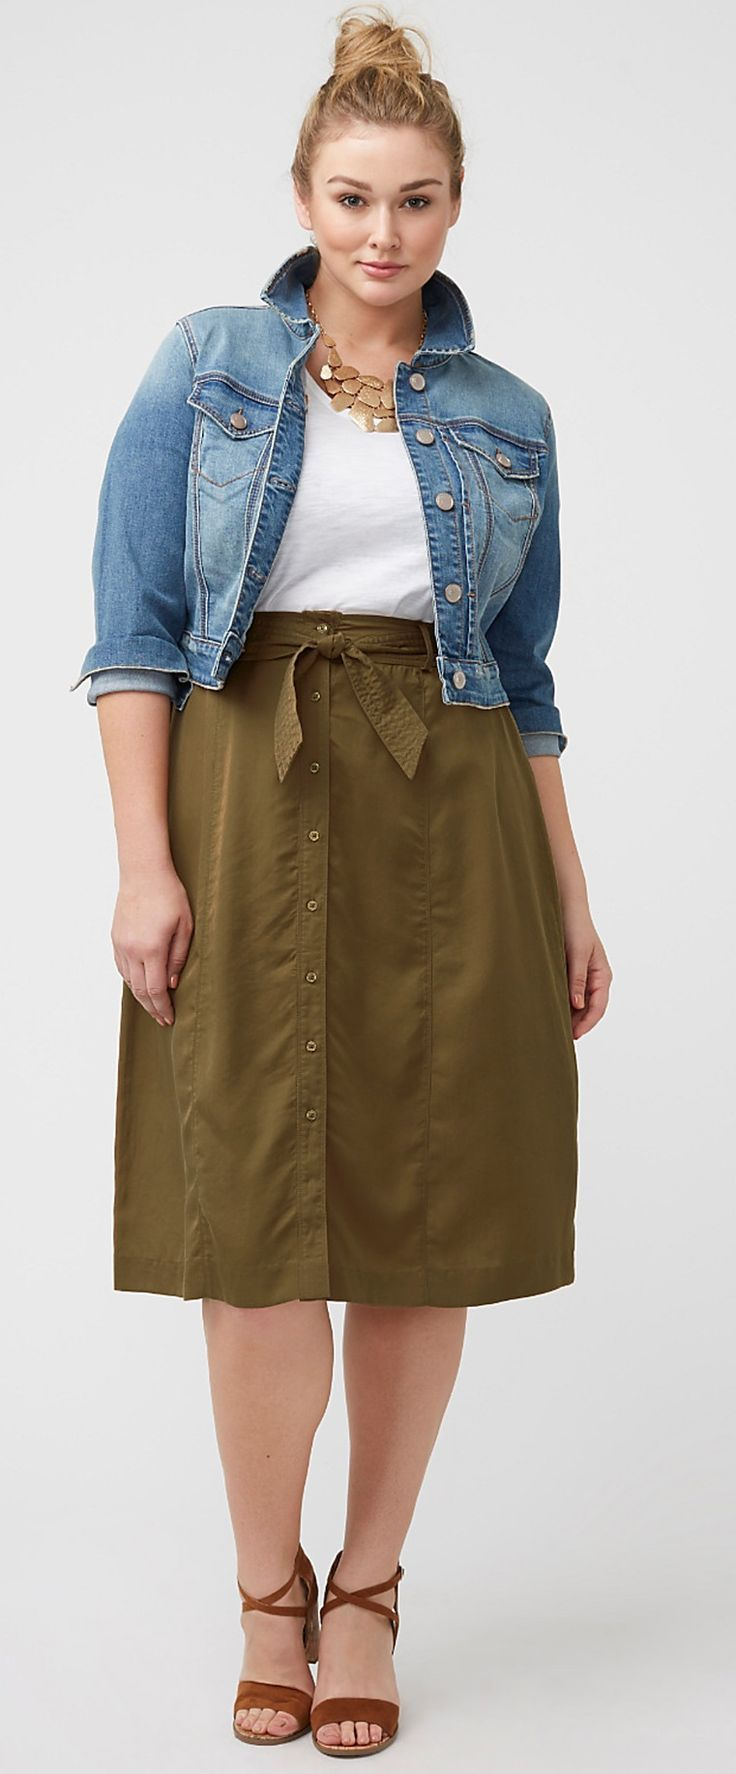 Plus Size Button Front Skirt | Plus size outfits, Size ...